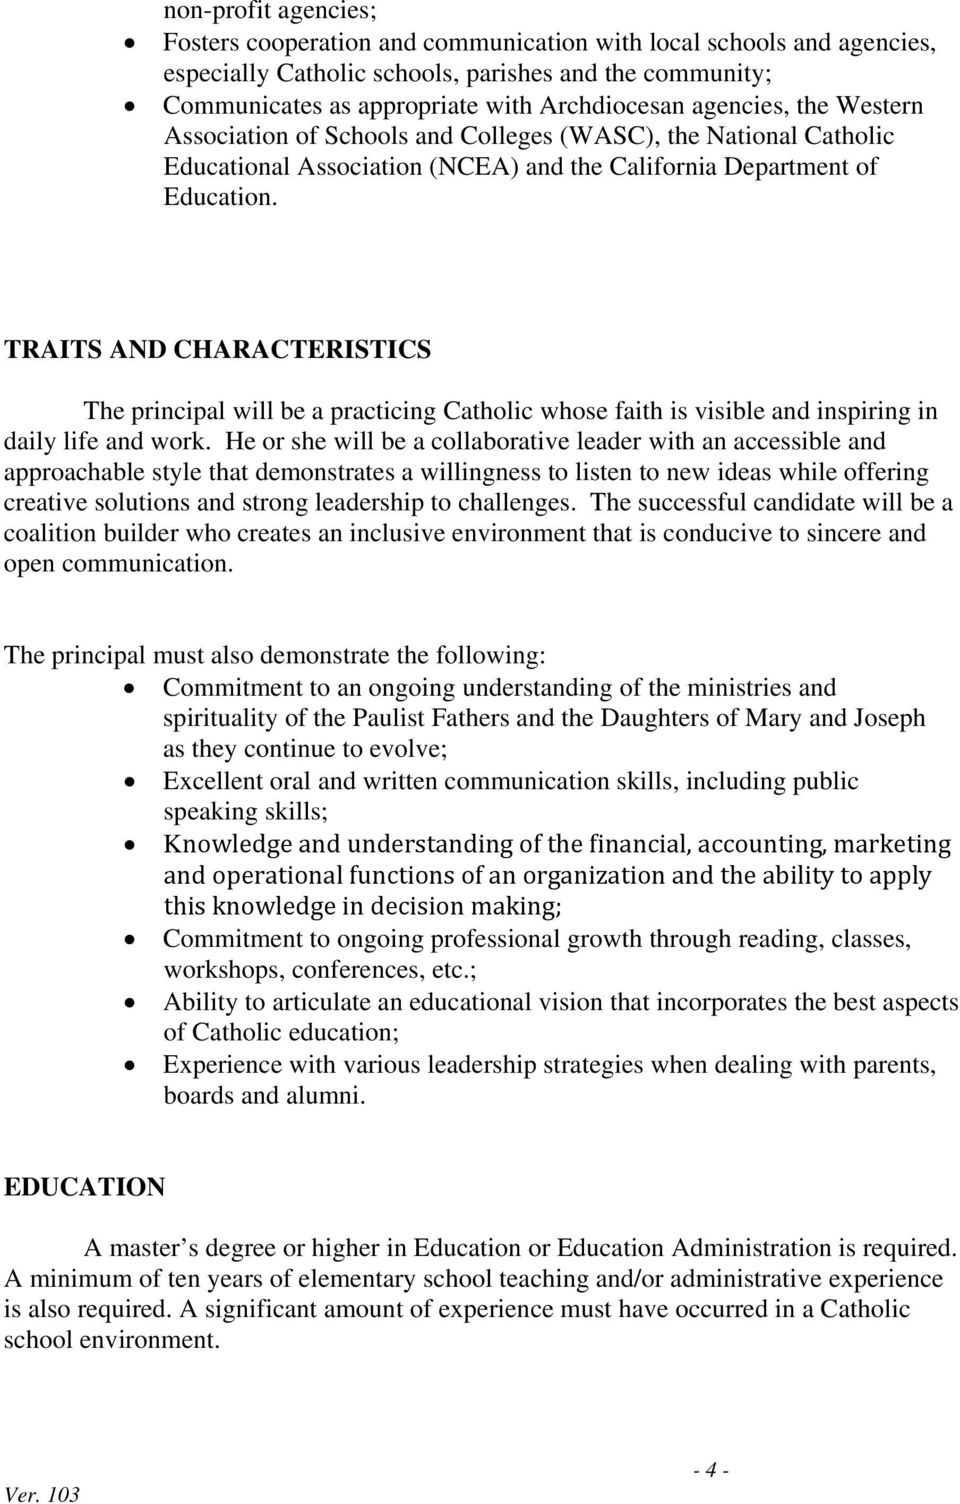 TRAITS AND CHARACTERISTICS The principal will be a practicing Catholic whose faith is visible and inspiring in daily life and work.